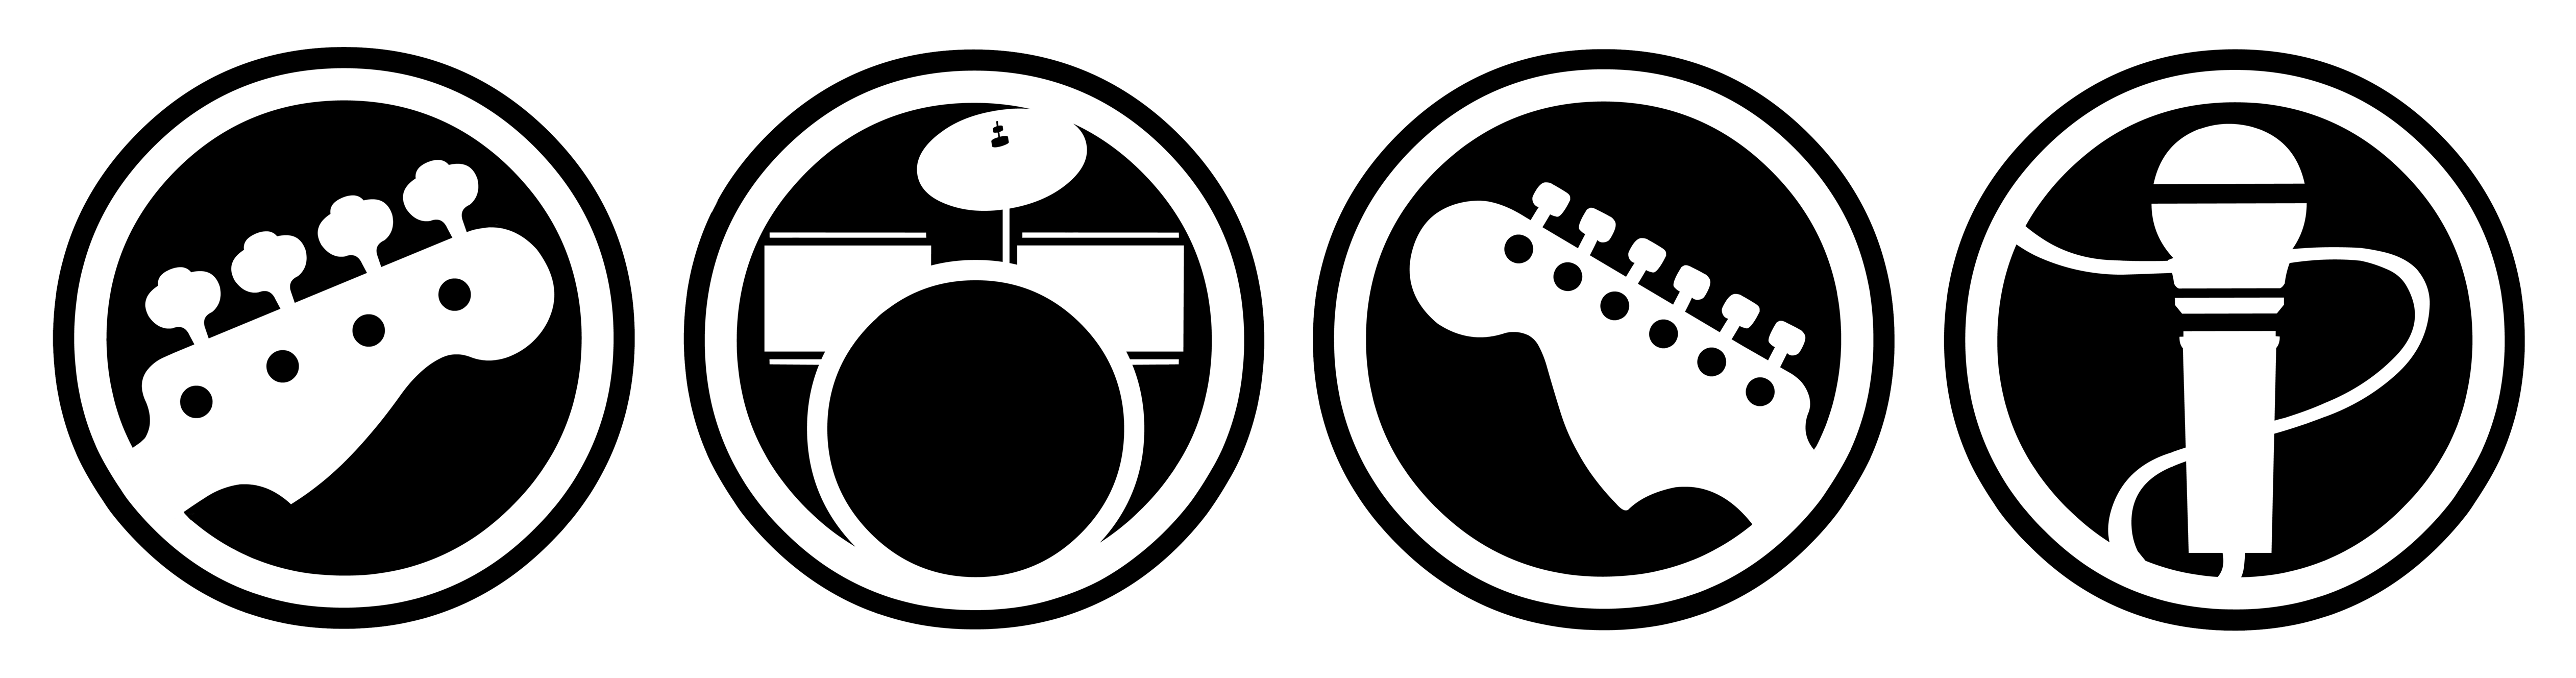 Wheel clipart rock.  collection of band